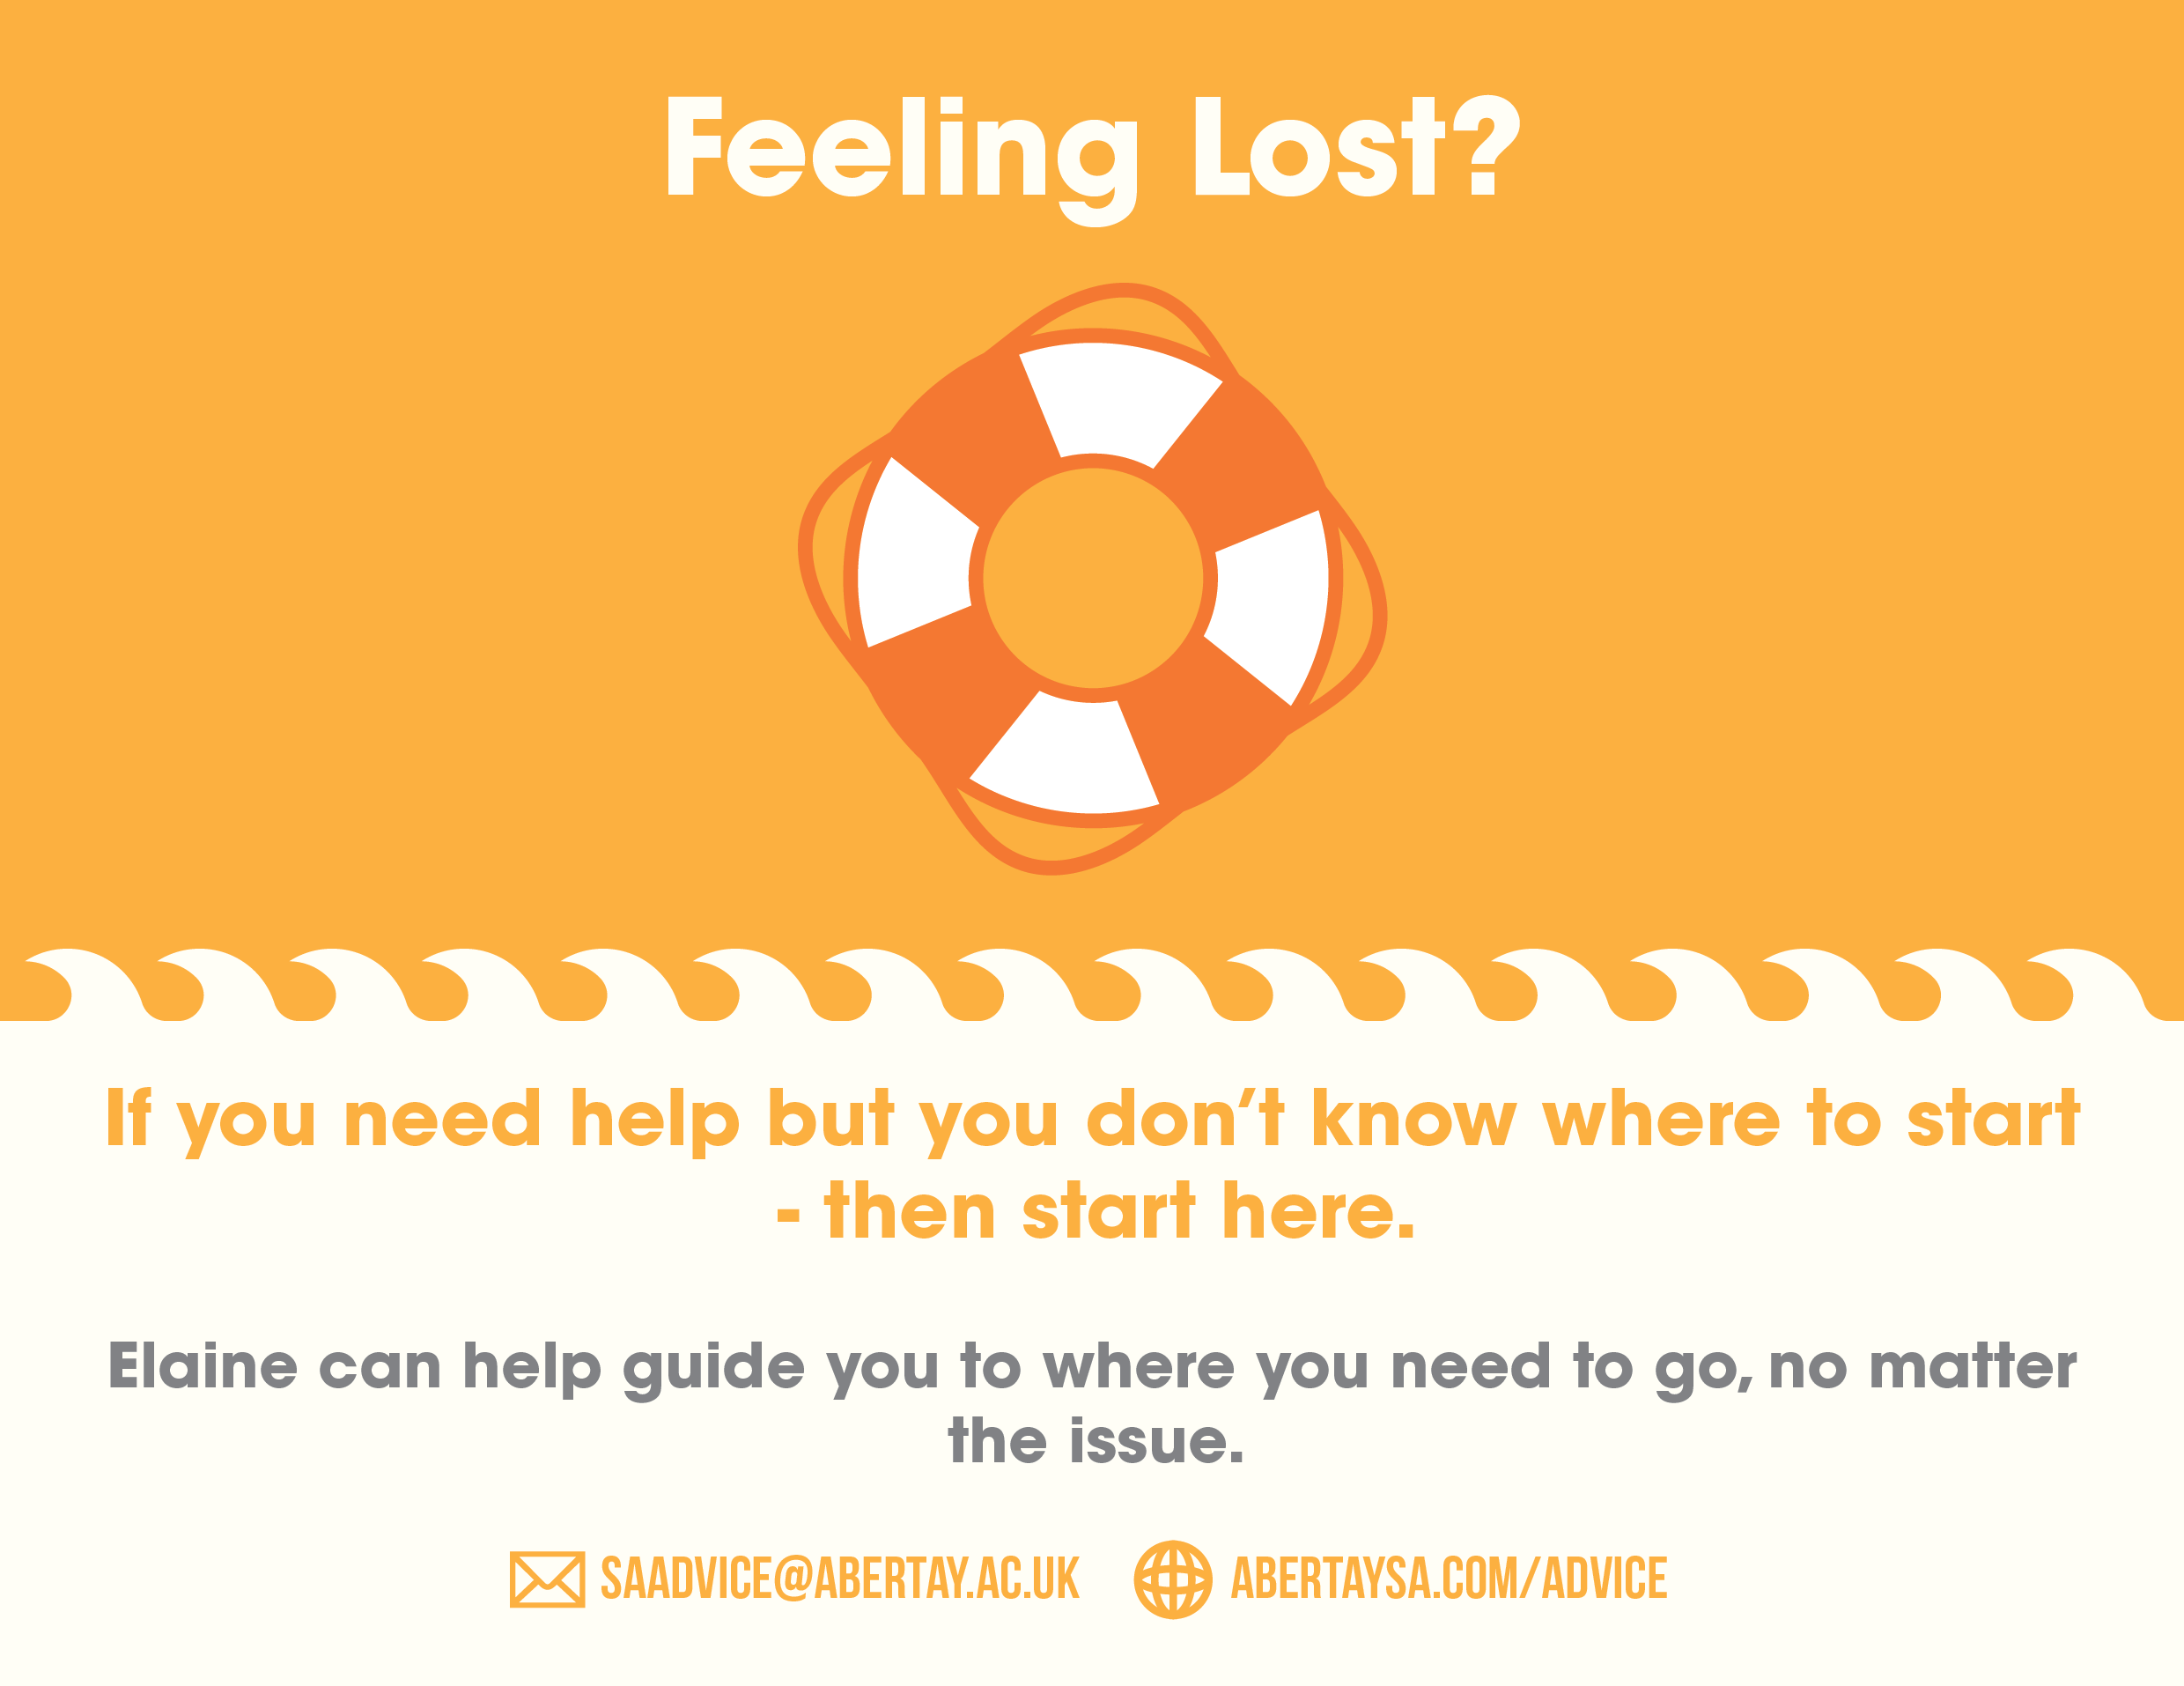 Feeling Lost? If you need help but you don't know where to start - then start here. Elaine can help guide you to where you need to go, no matter the issue. Contact us via email at SAAdvice@abertay.ac.uk, or pop into the office (accross from the main lecture theatre, for a visit.